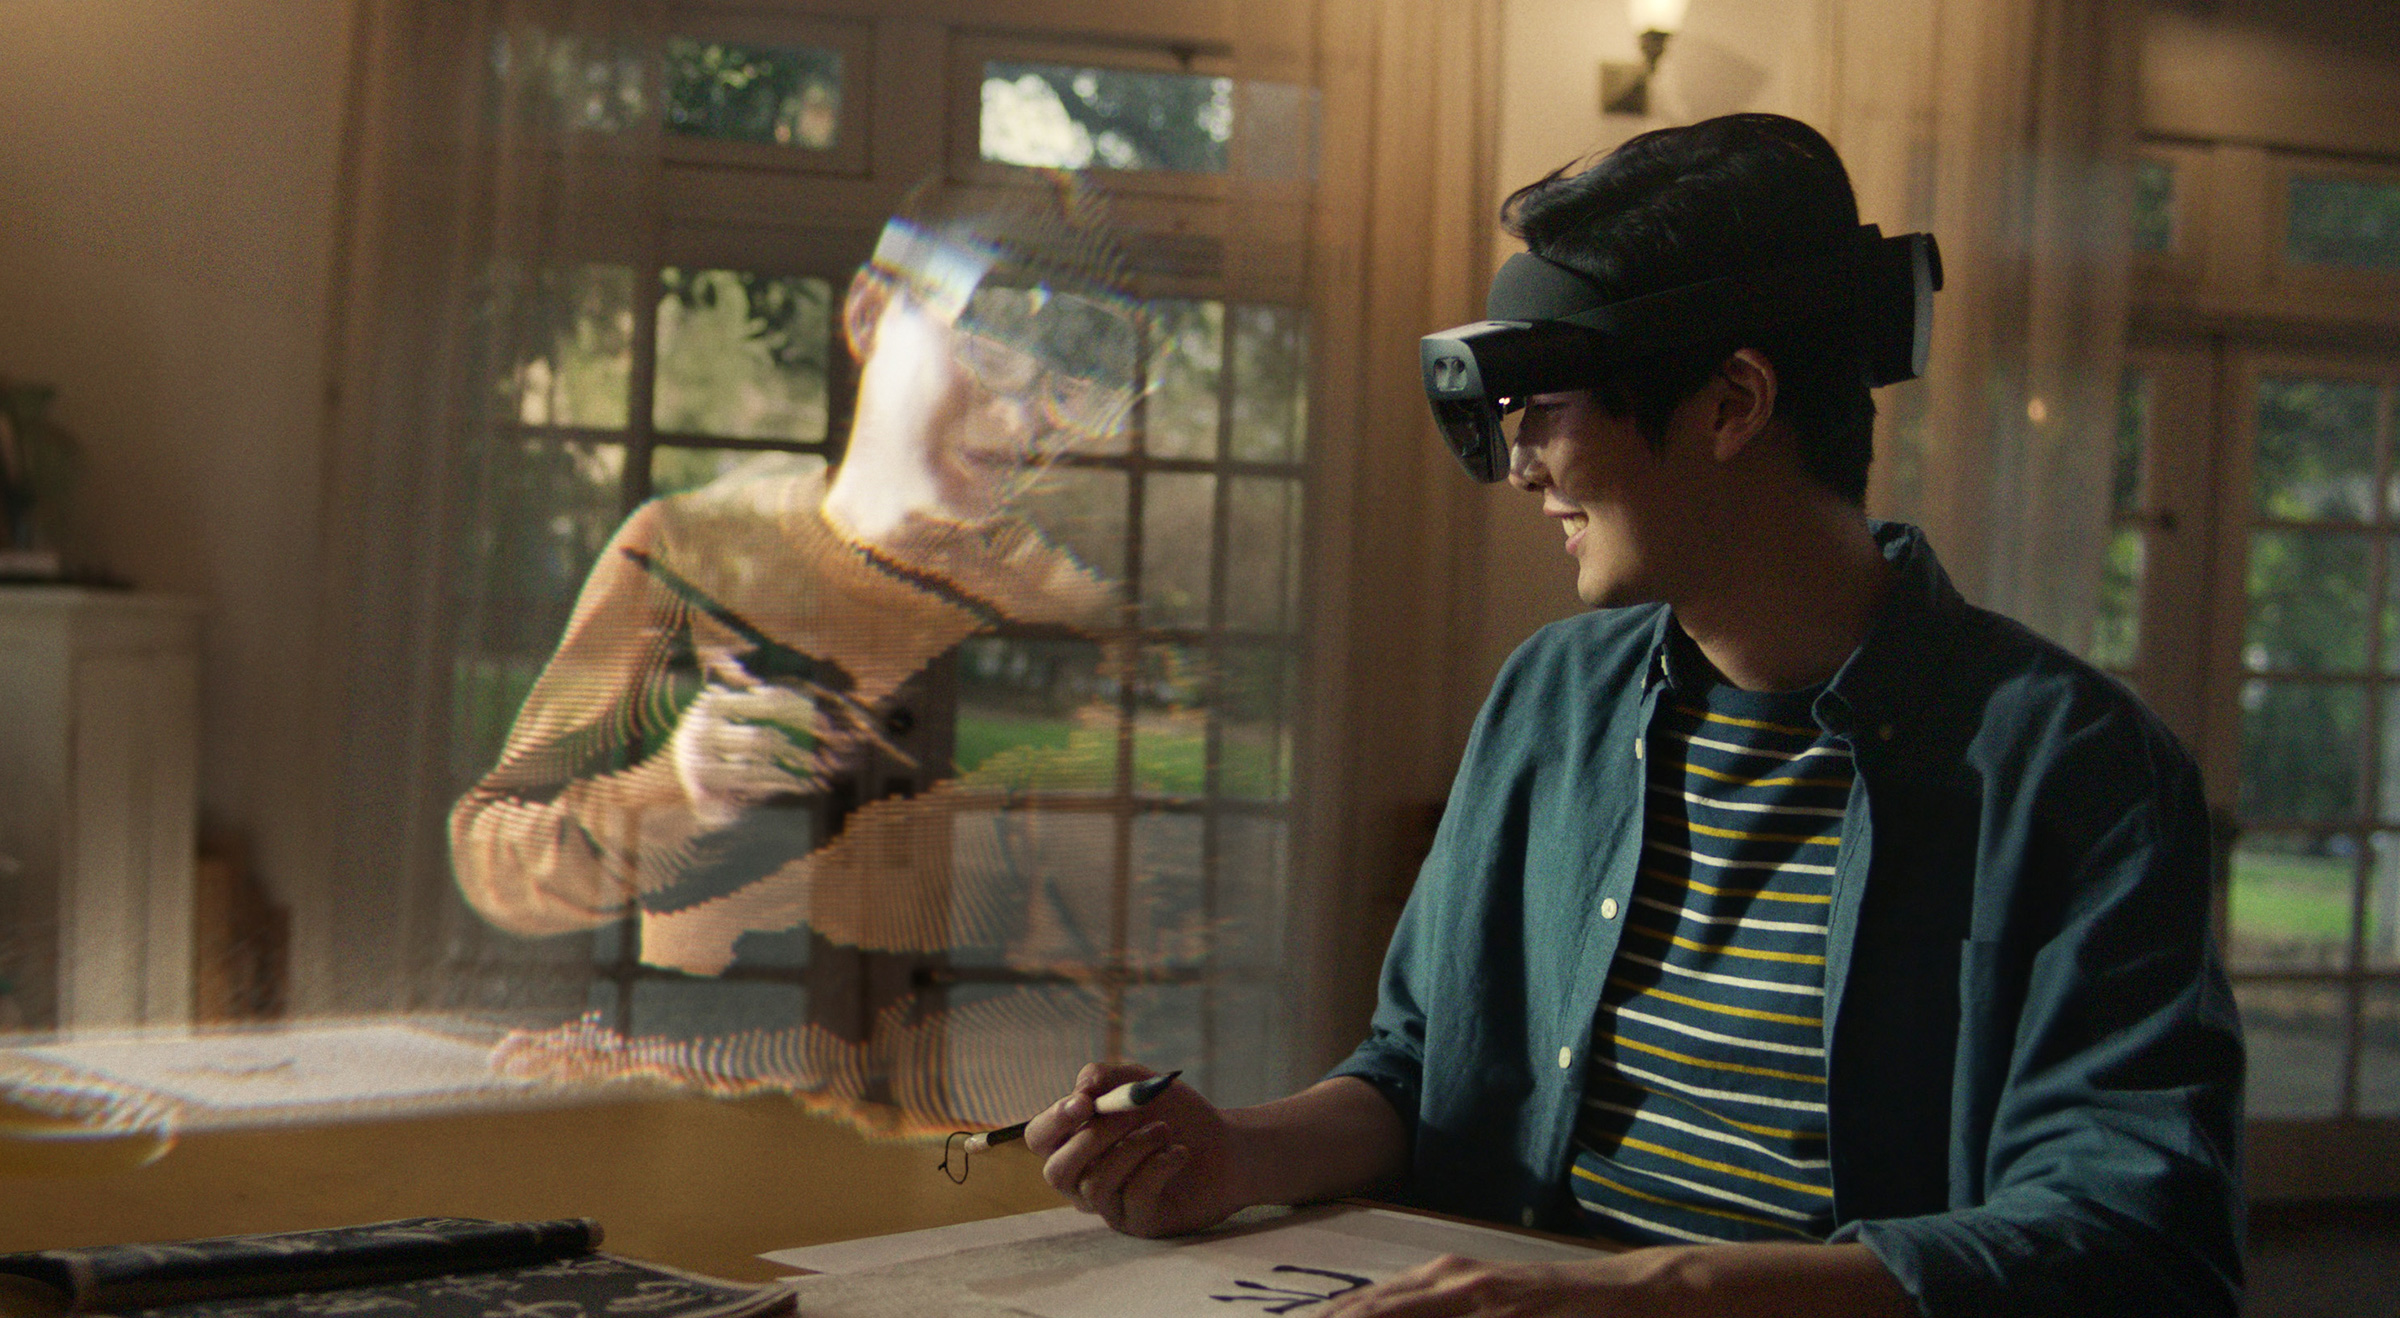 A still from Microsoft Mesh, a new mixed-reality platform powered by Azure that allows people in different physical locations to join collaborative and shared holographic experiences on many kinds of devices.